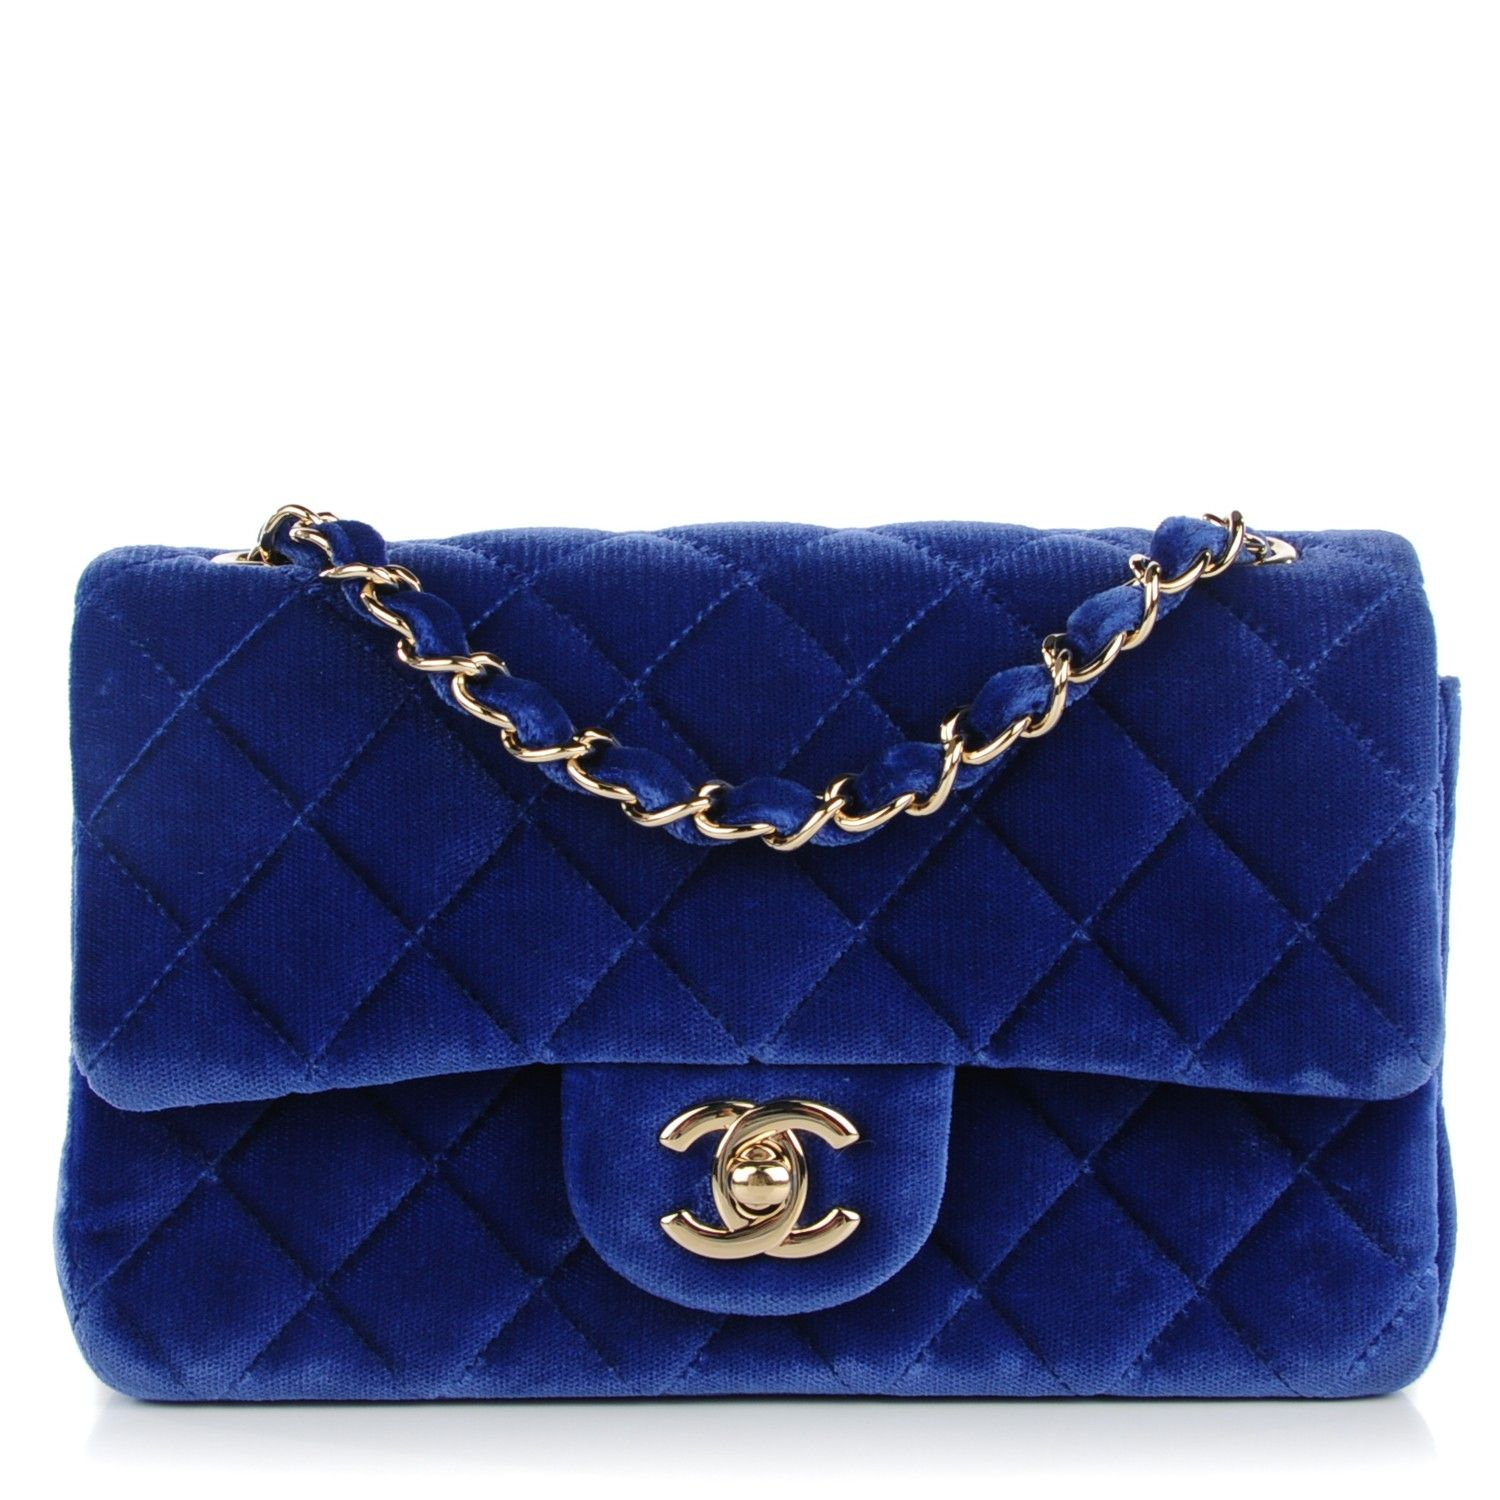 284f9f99edff Chanel Velvet Quilted Rectangular Mini Flap in Dark Blue